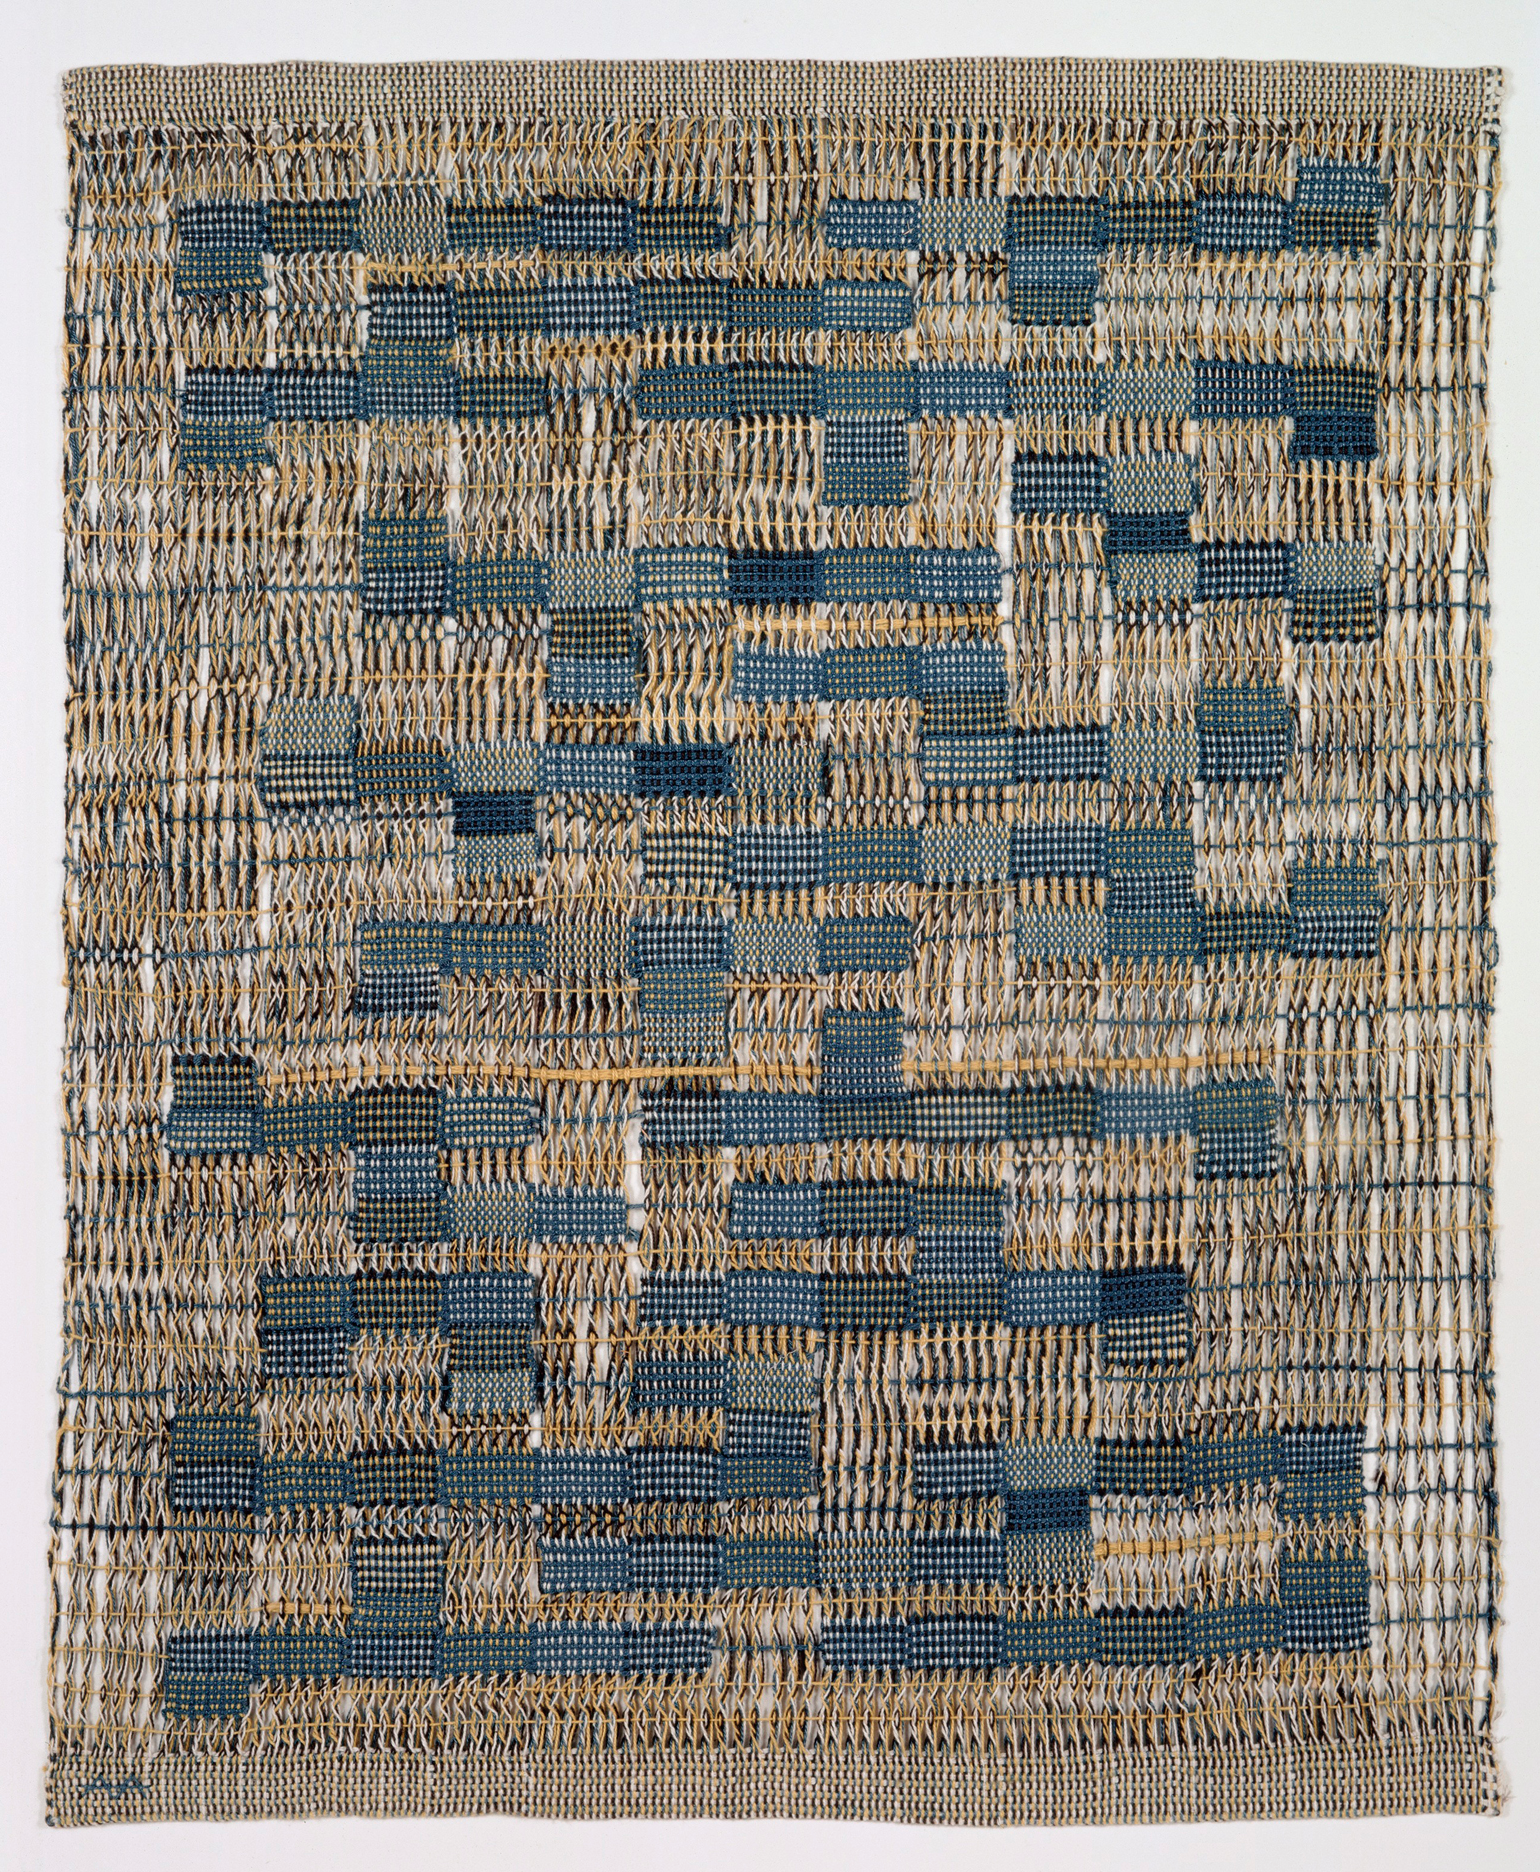 Anni Albers, Tikal, 1958; Cotton, 30 x 23 in.; Museum of Arts and Design; Gift of the Johnson Wax Company, through the American Craft Council, 1979; Photo by Eva Heyd